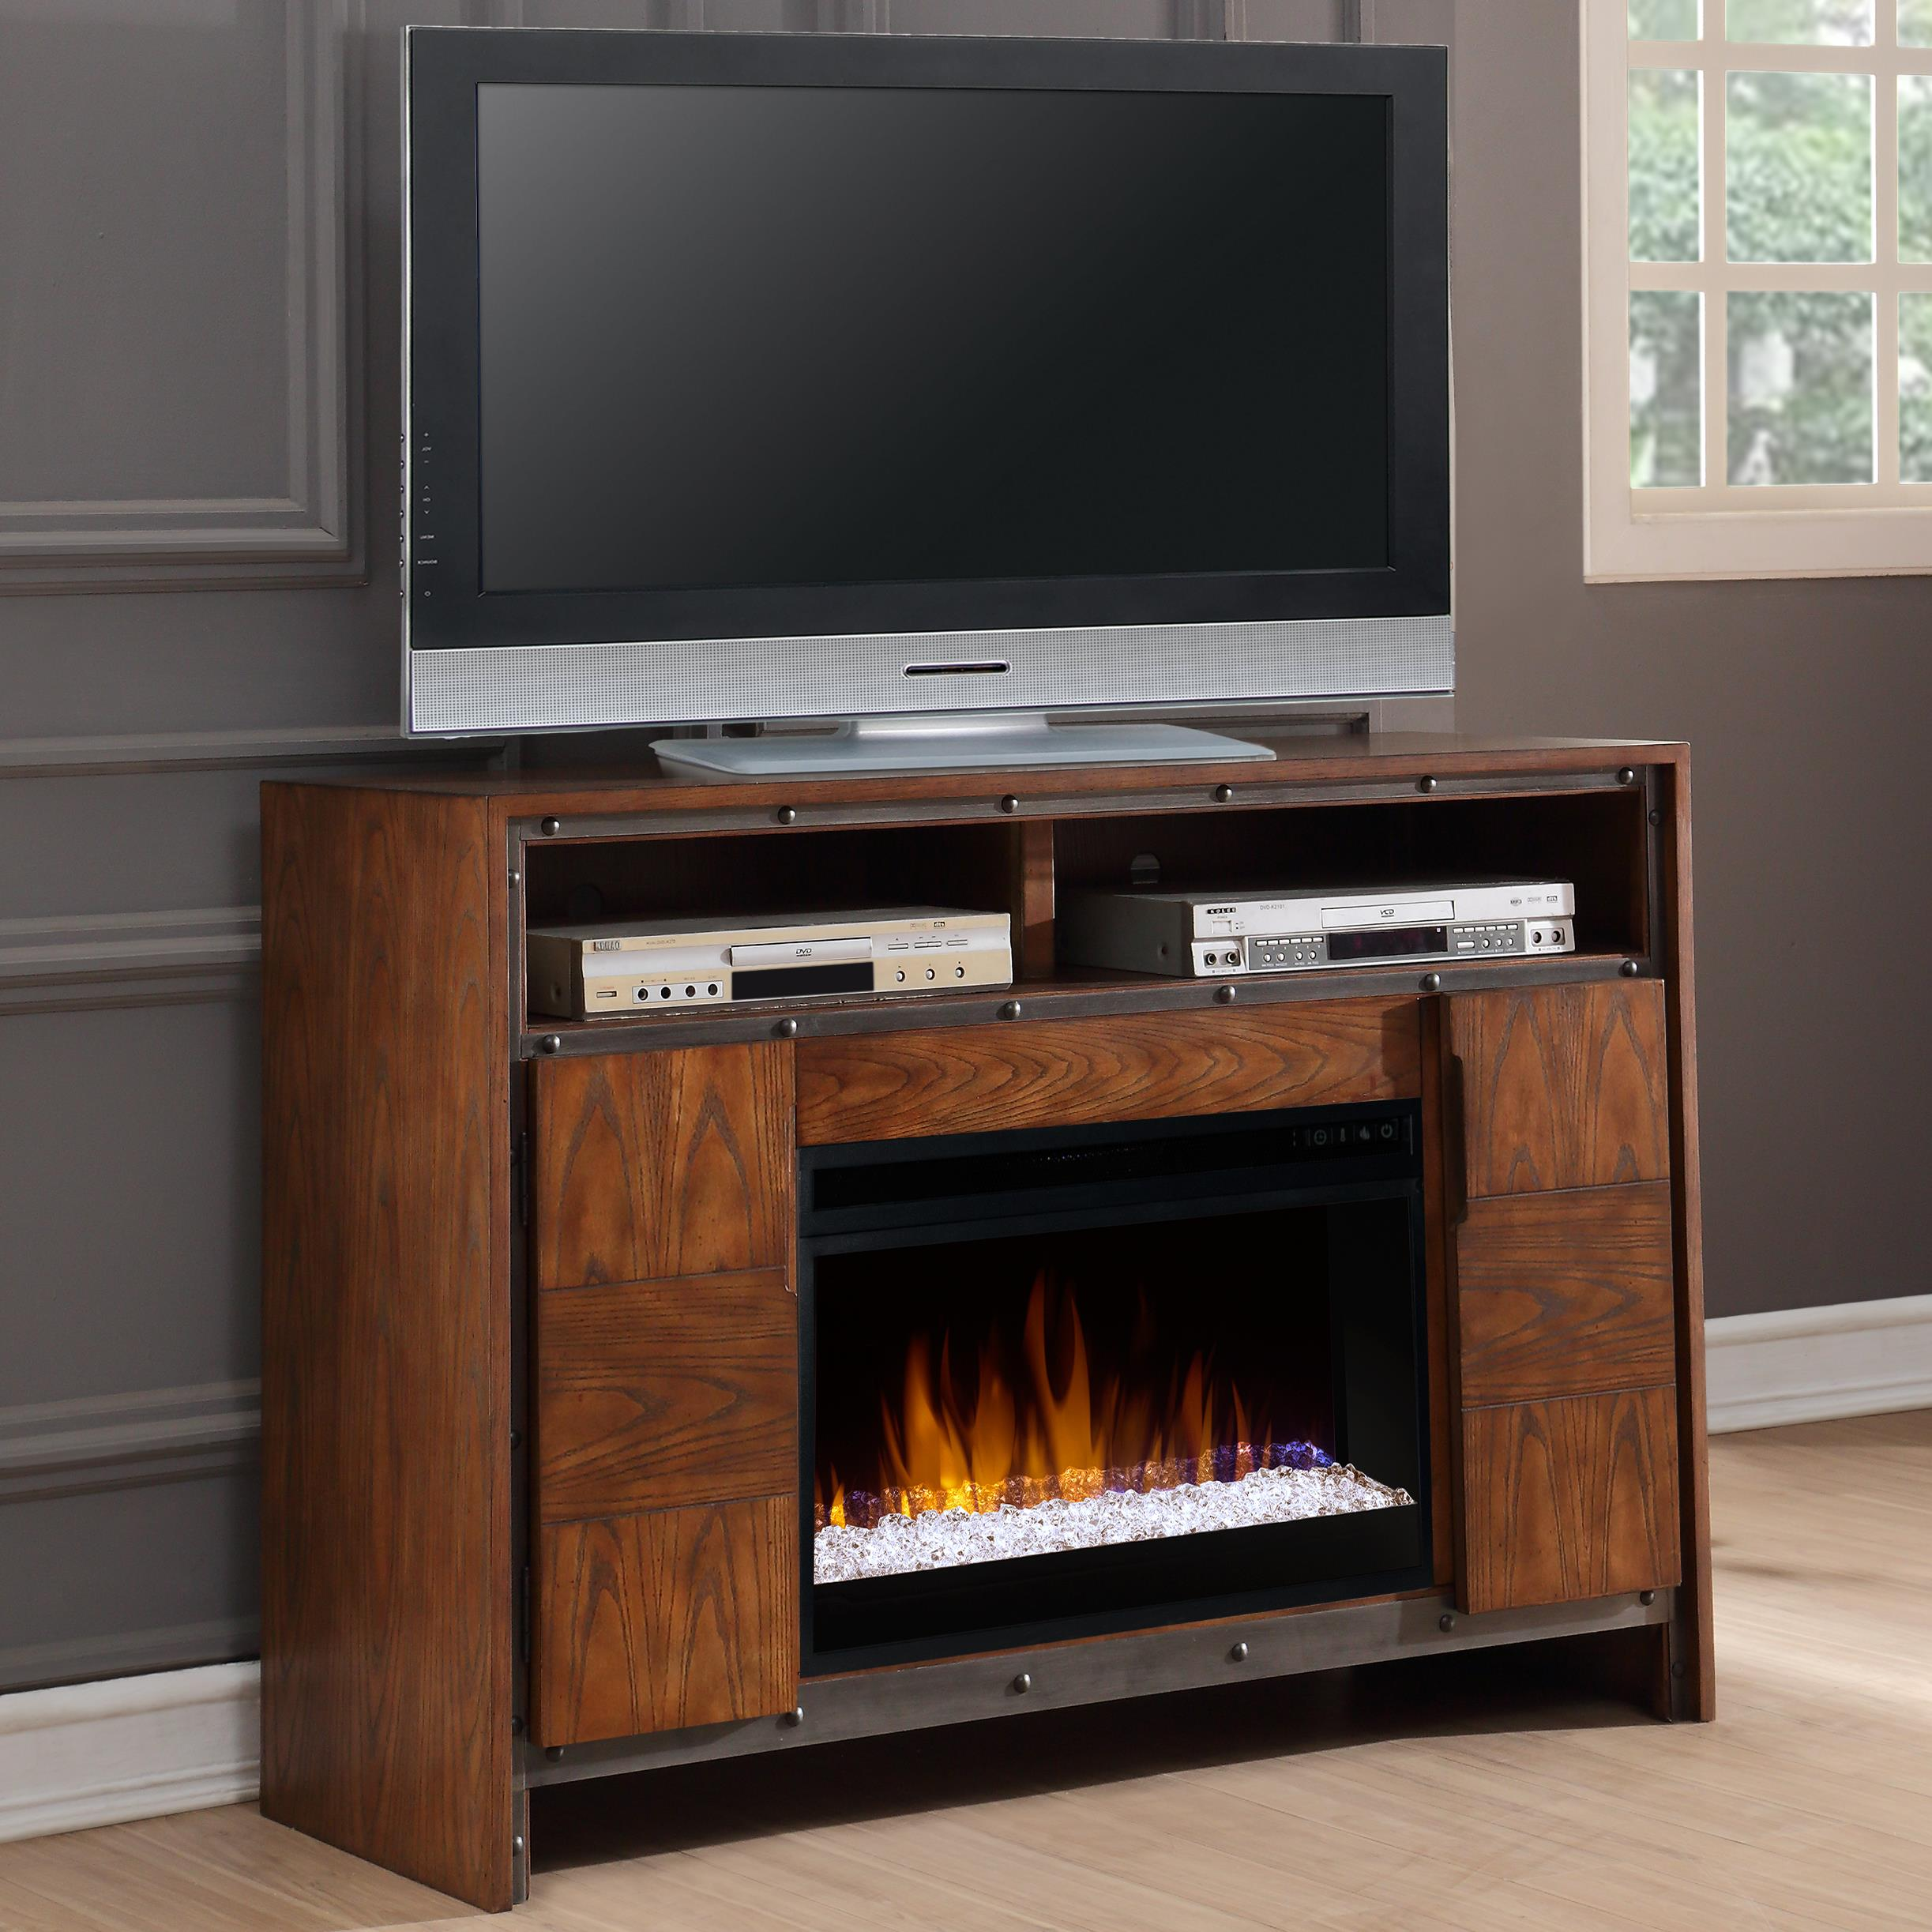 "Legends Furniture Crossgrain Collection 50"" Fireplace Console - Item Number: ZCGN-1950"